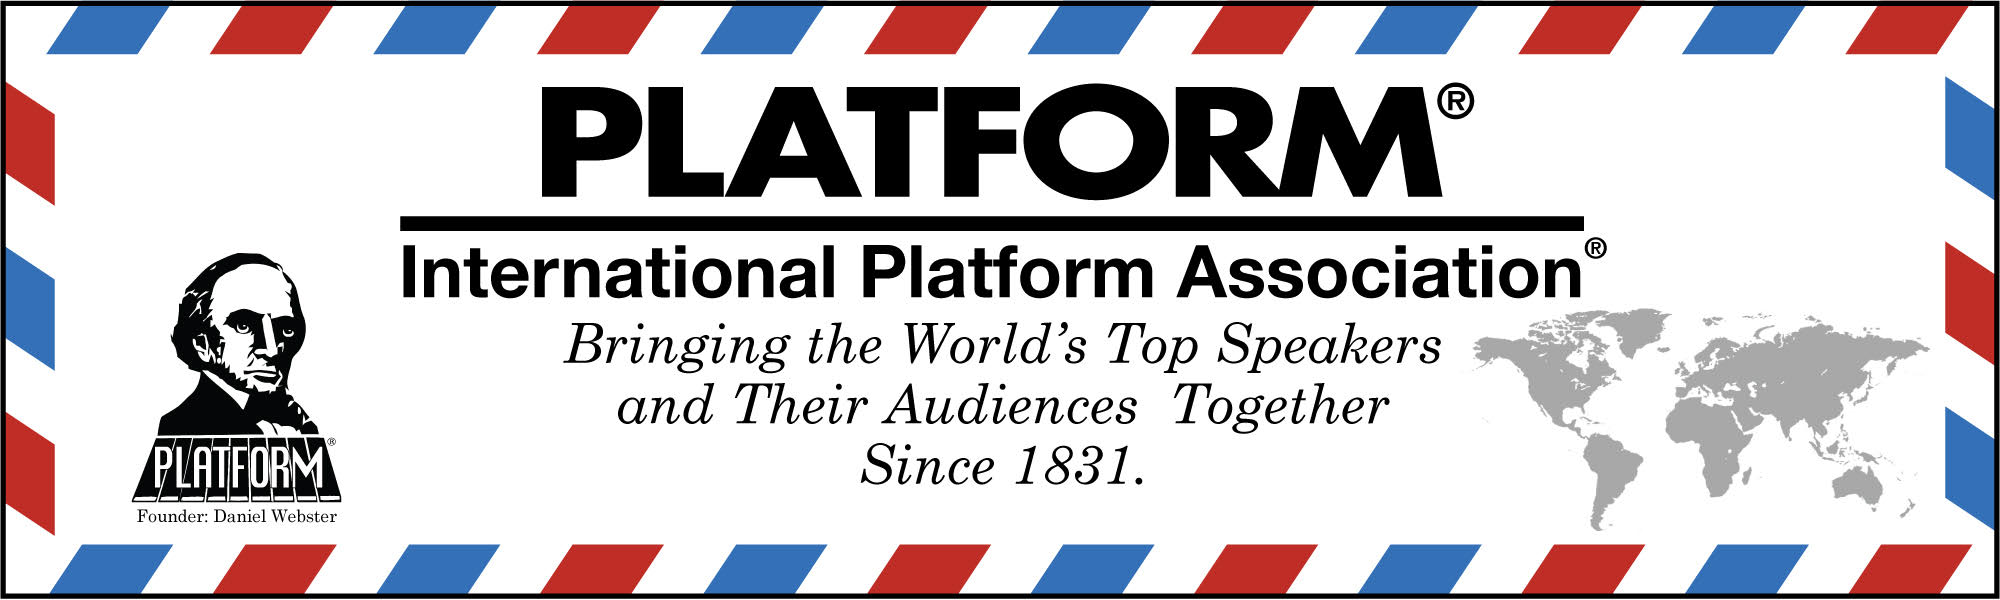 International Platform Association